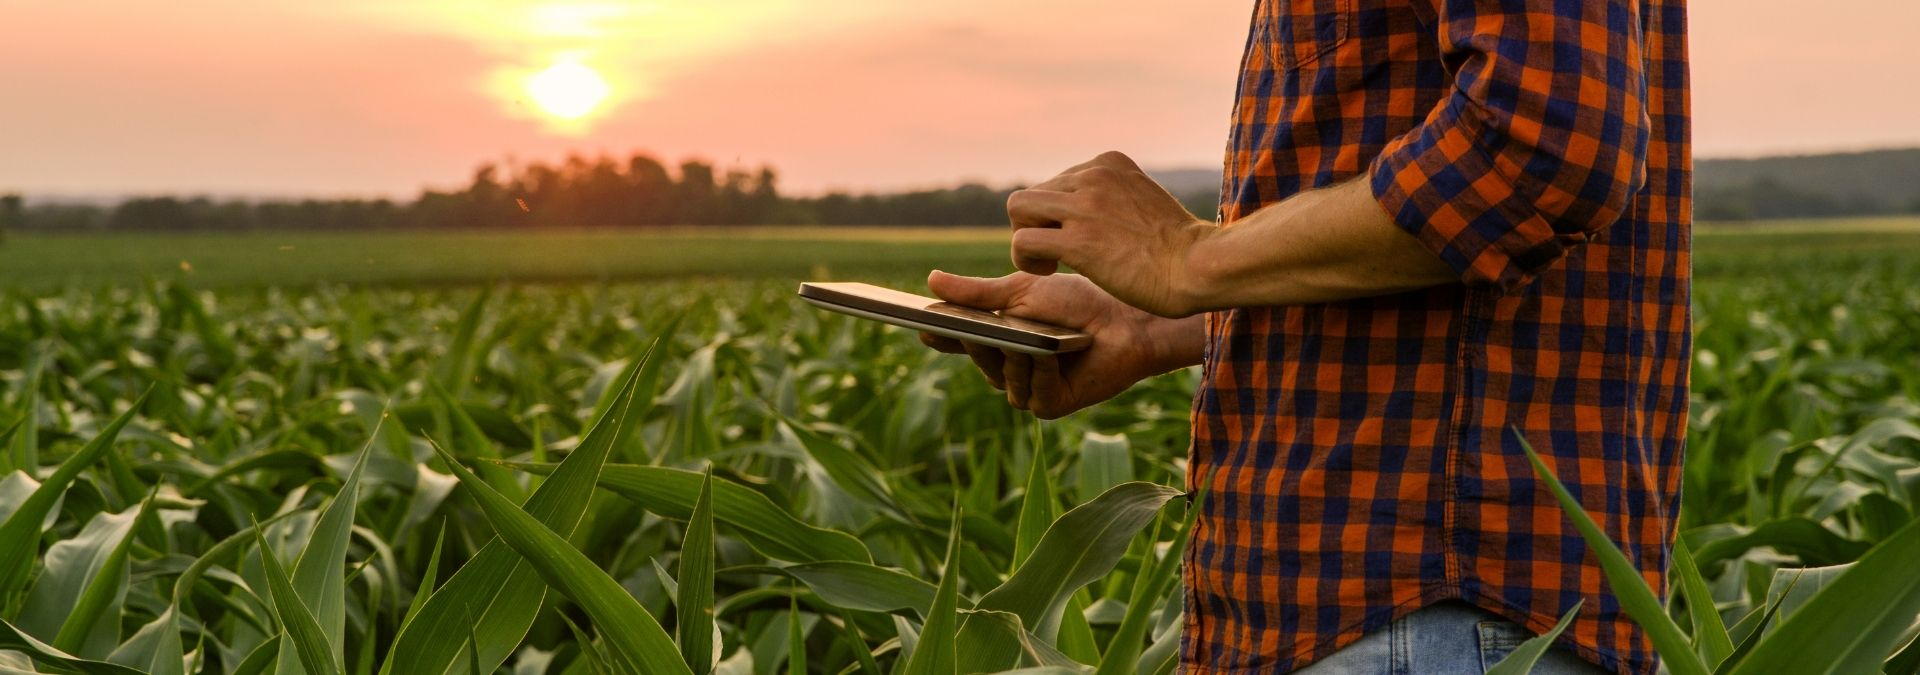 Agribusiness Science & Technology